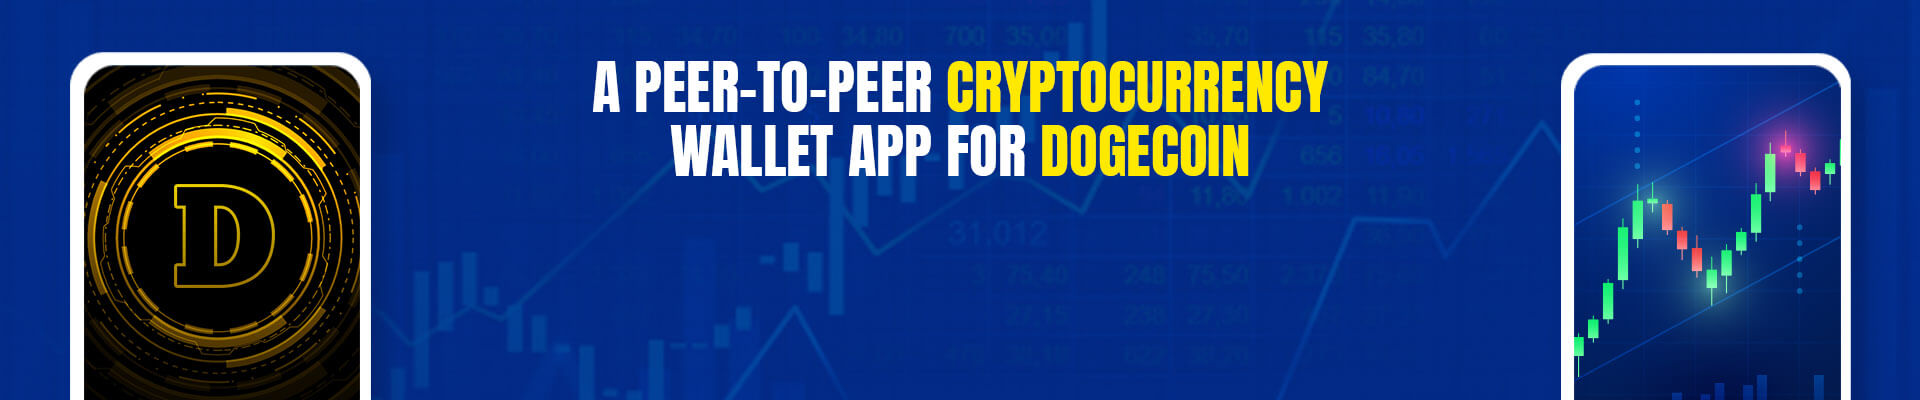 How To Develop A Peer-To-Peer Cryptocurrency Wallet App For Dogecoin